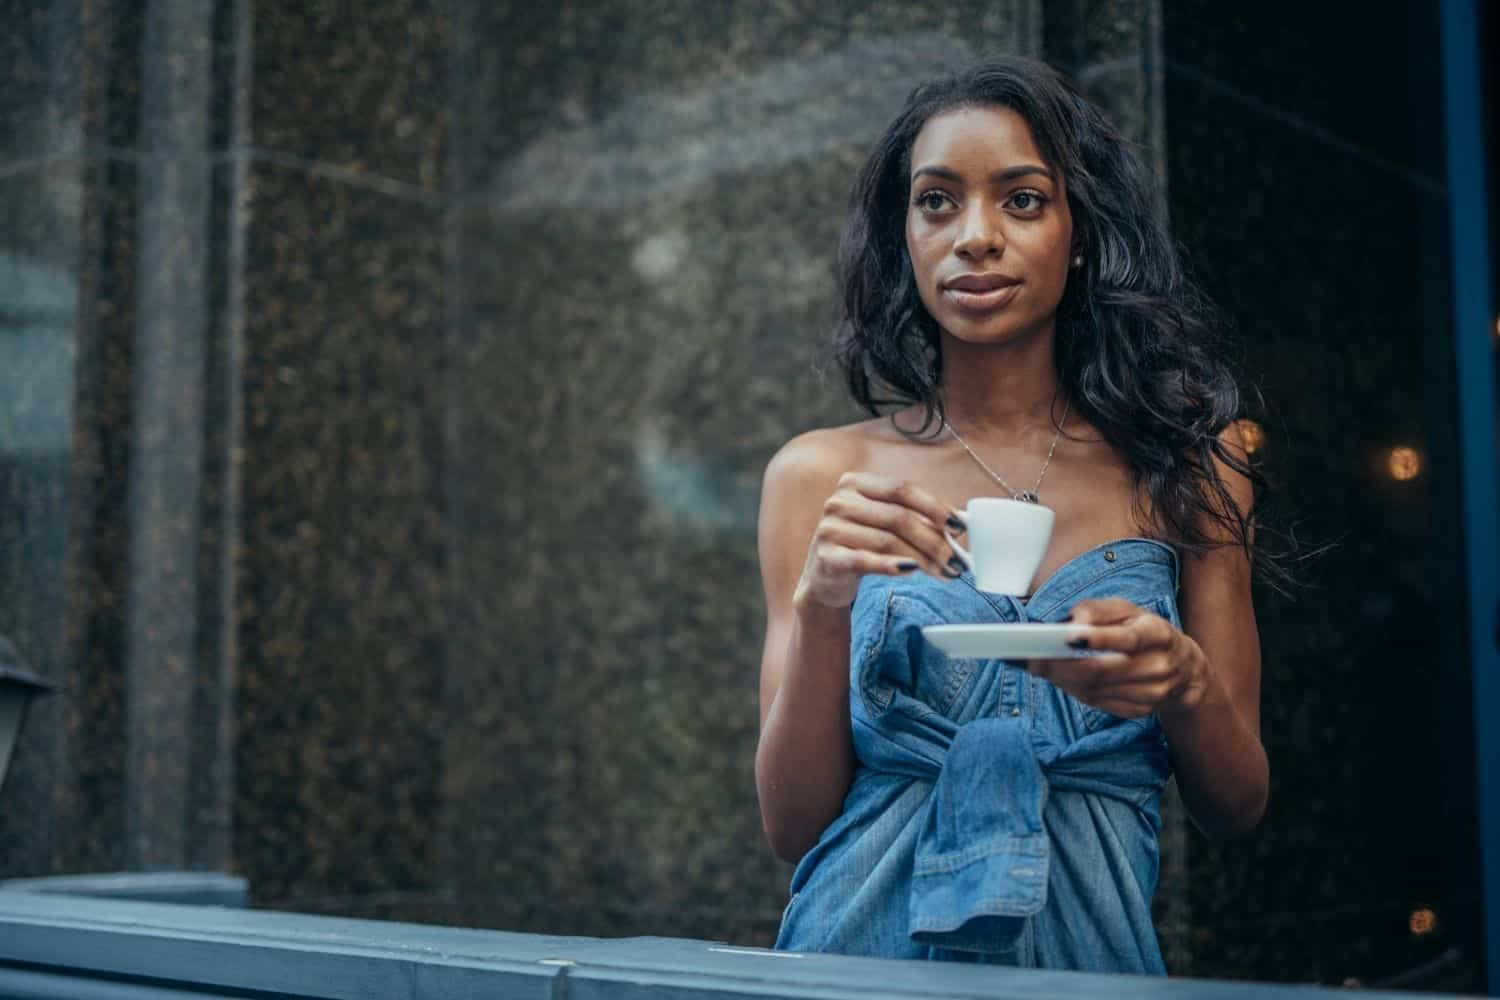 woman drinking black coffee without sugar.